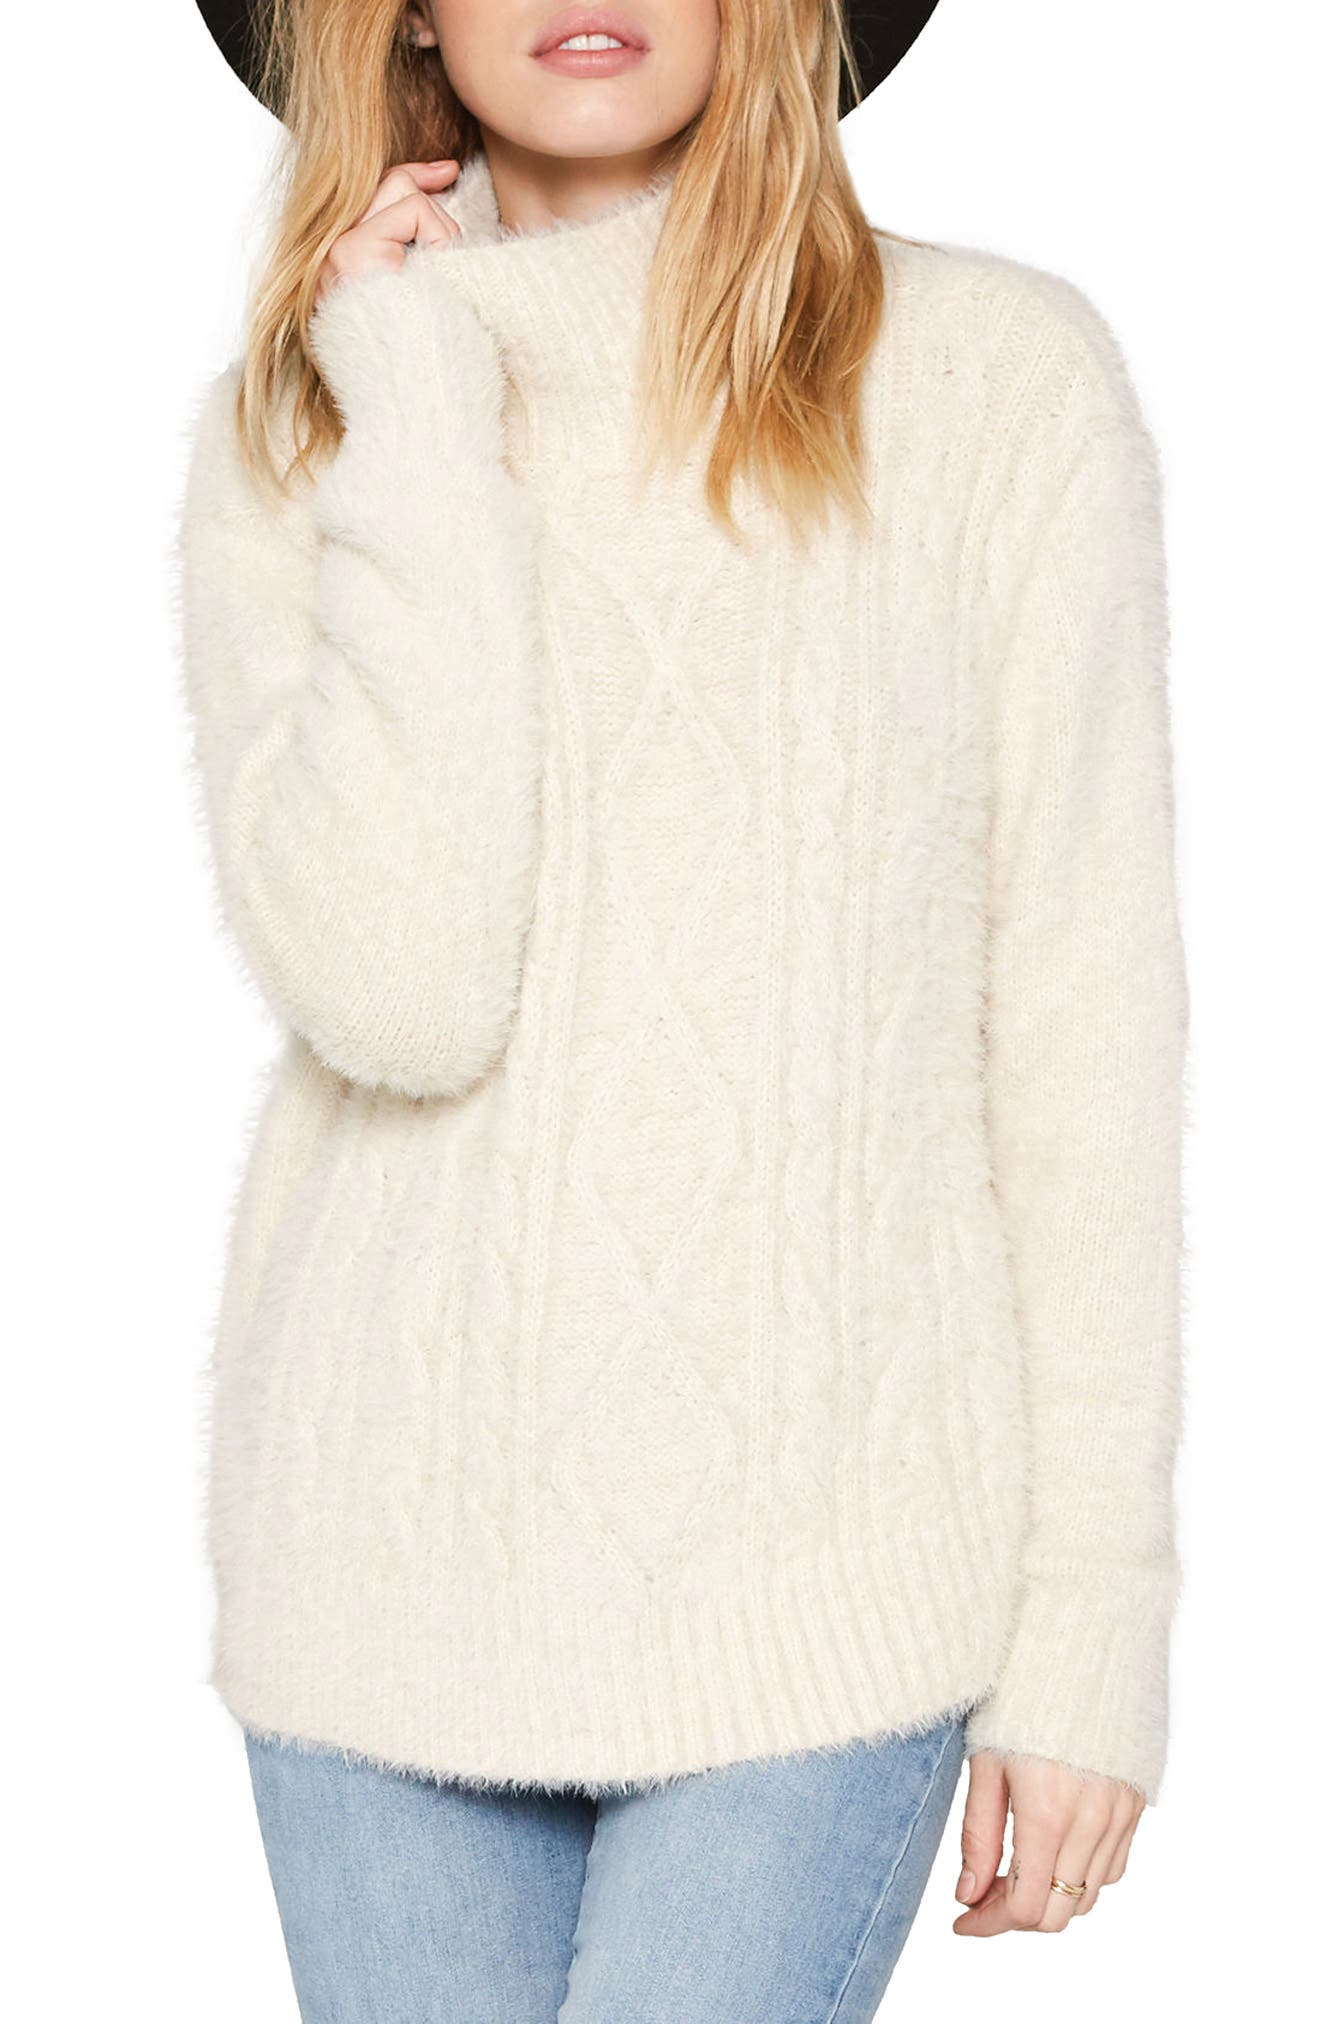 Women's Off-White Turtleneck Sweaters | Nordstrom